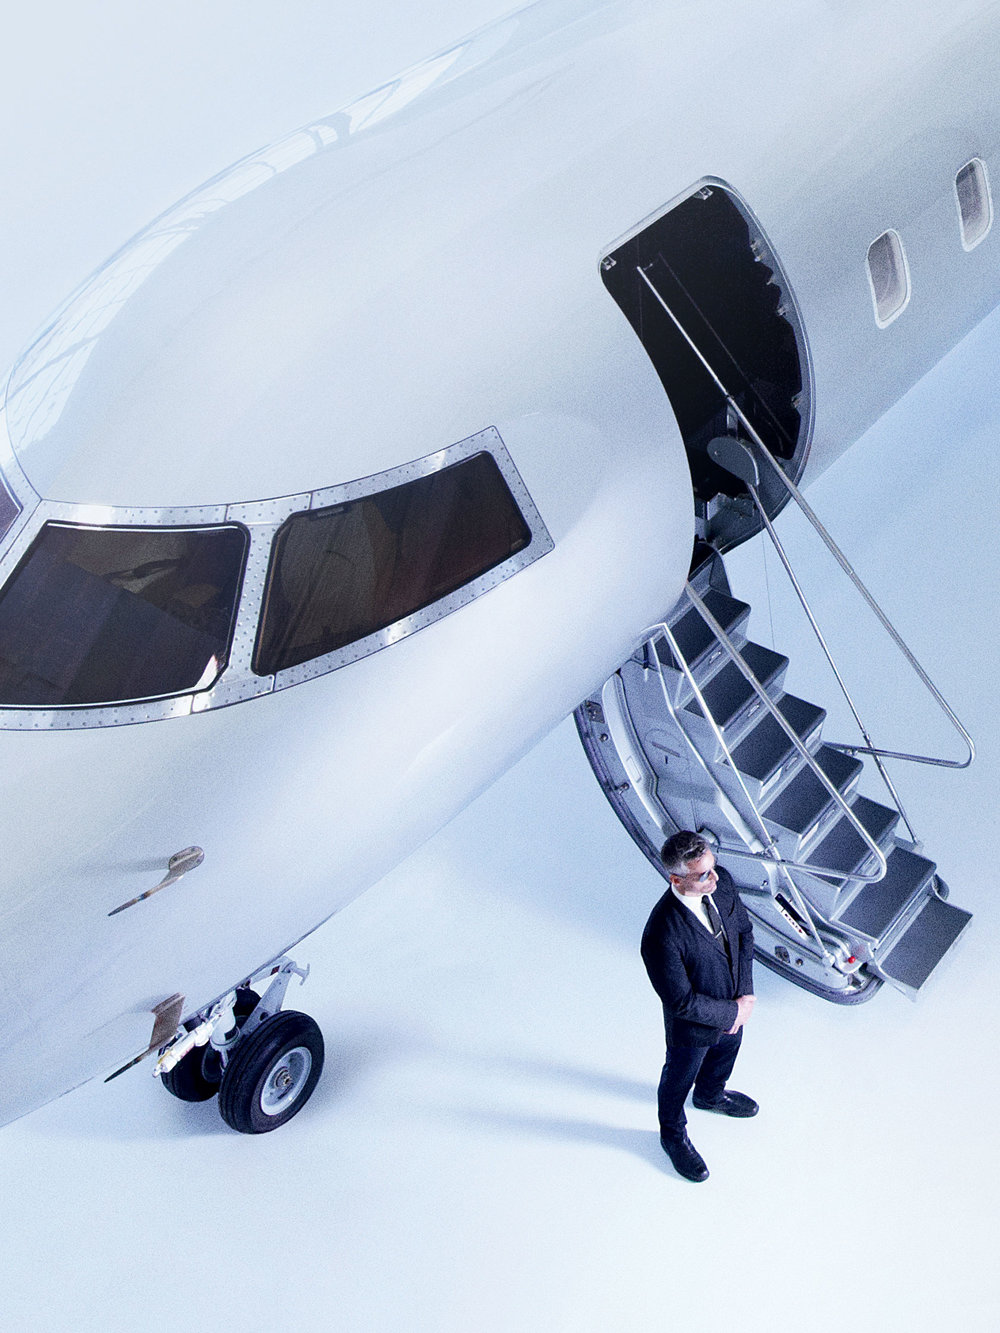 Bombardier Business Aircraft - Experience Magazine